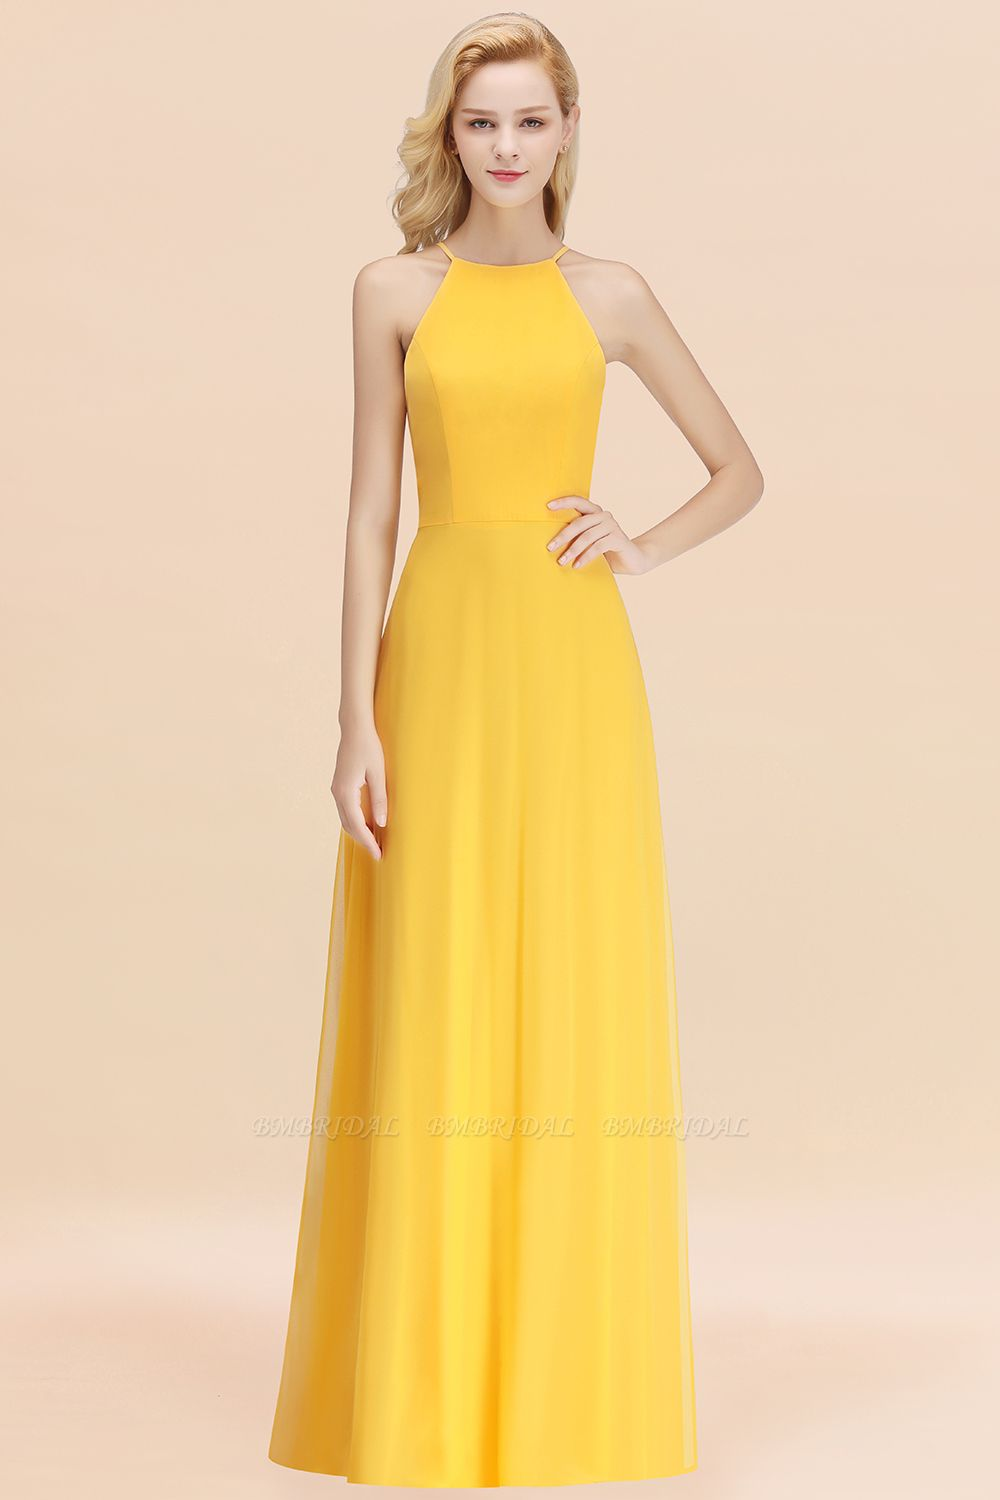 BMbridal Modest High-Neck Yellow Chiffon Affordable Bridesmaid Dresses Online